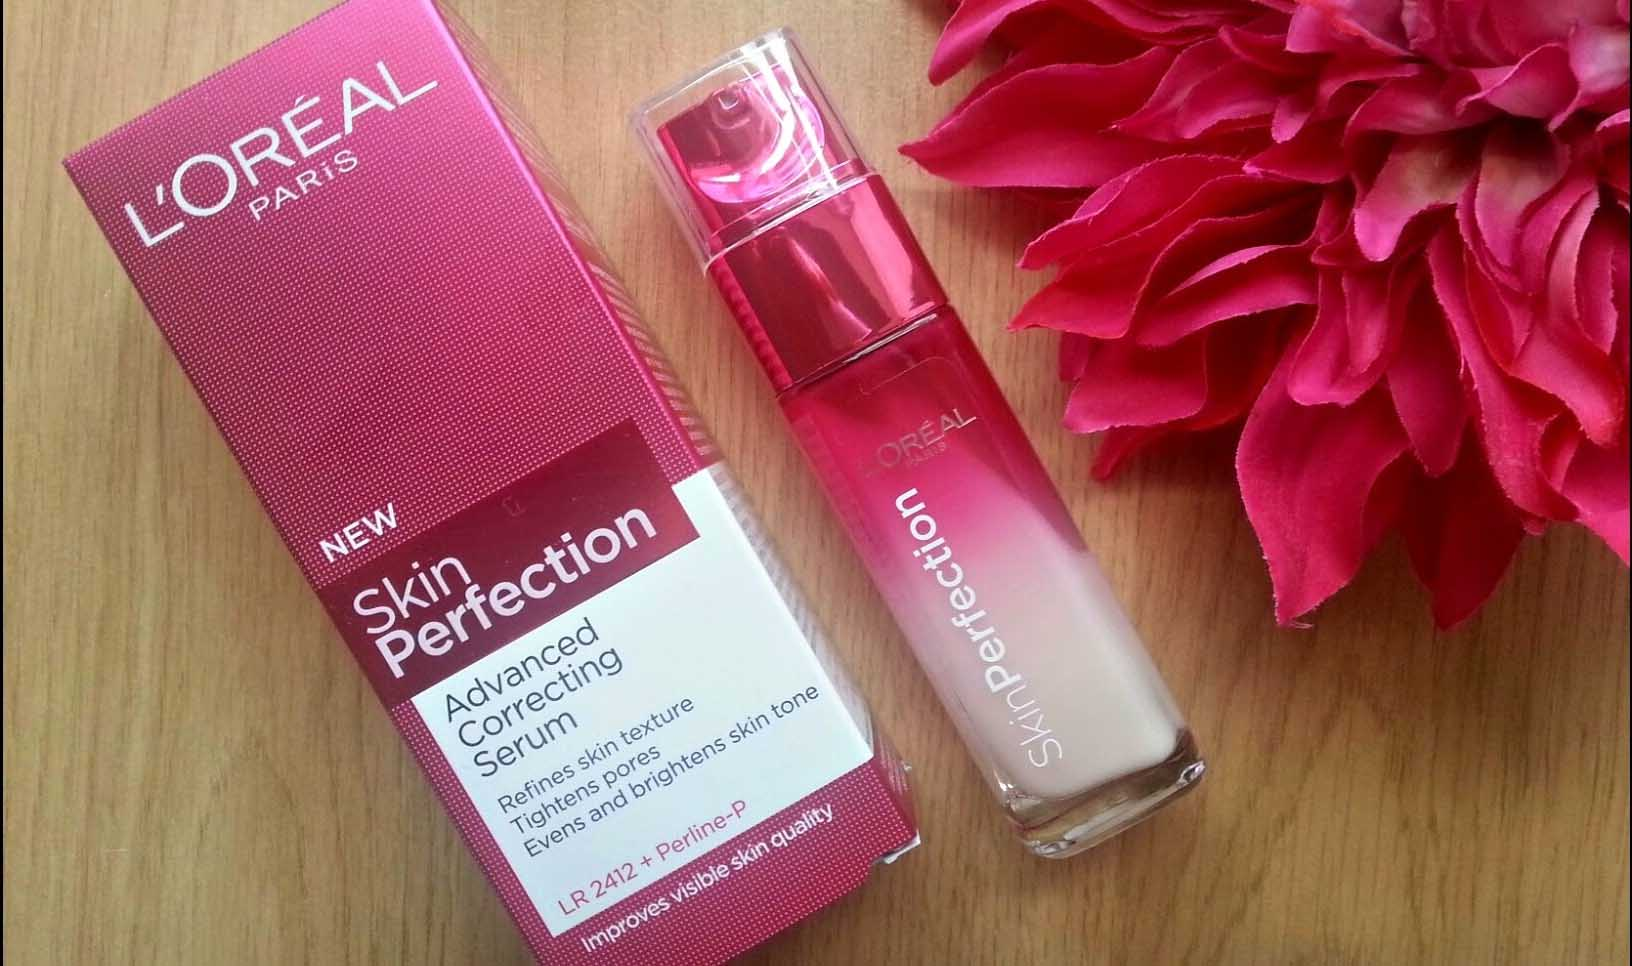 Skin Perfection Advanced Correcting Serum